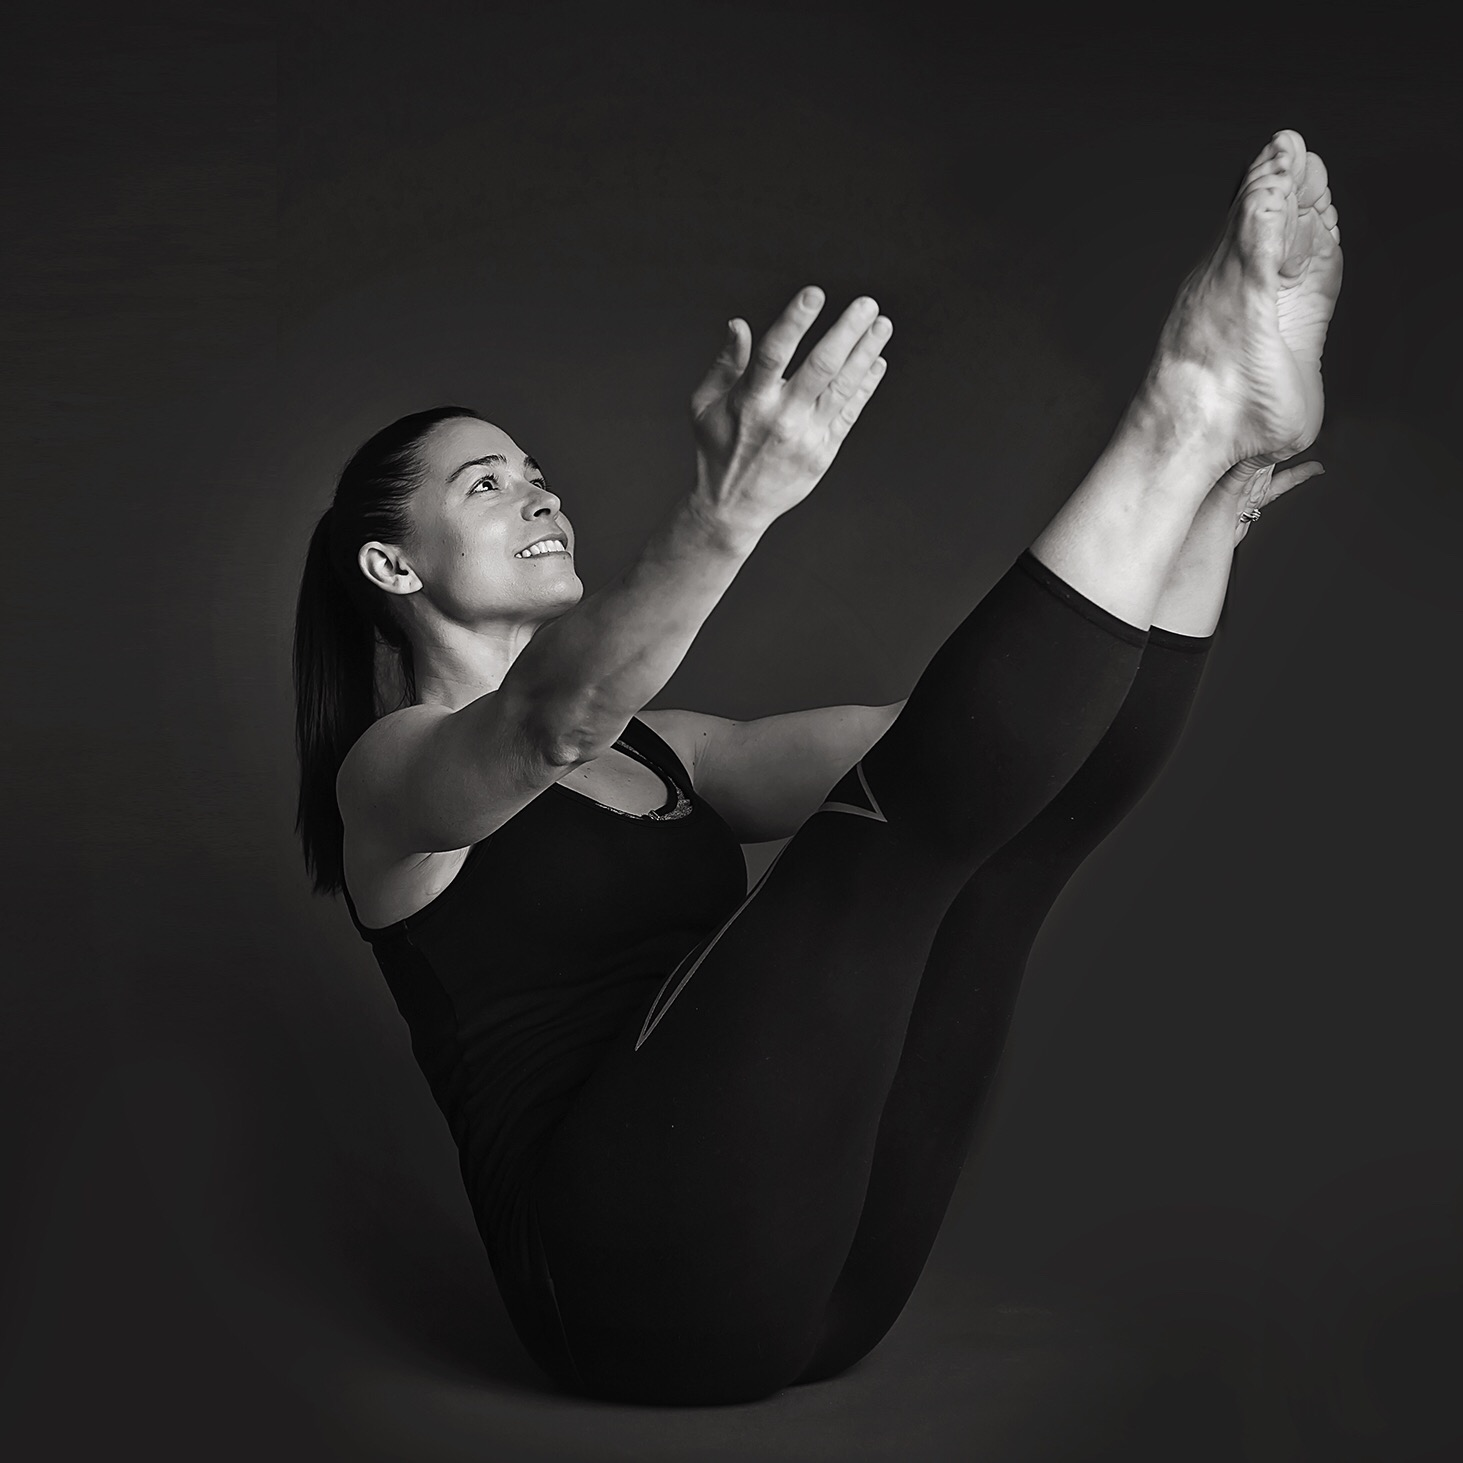 Pilates 101 - Pilates focuses on integrating all parts of the body into one, rather than segregating the body into inefficiently working parts. It aims to restore the natural curvature of the spine, re-balance the muscles, and re-train the body to move safer and more efficiently. Pilates 101 will go deeply into the basic principles of the technique, and the importance of alignment and proper muscle recruitment. Practice doesn't make perfect...PERFECT practice makes perfect! It takes 300 repetitions to create a bad habit and 3,000 repetitions to undo that bad habit! Perfecting these Pilates principles will allow you to apply them to all the other areas of your daily life, and prevent the bad habits and resulting injuries that would otherwise occur.